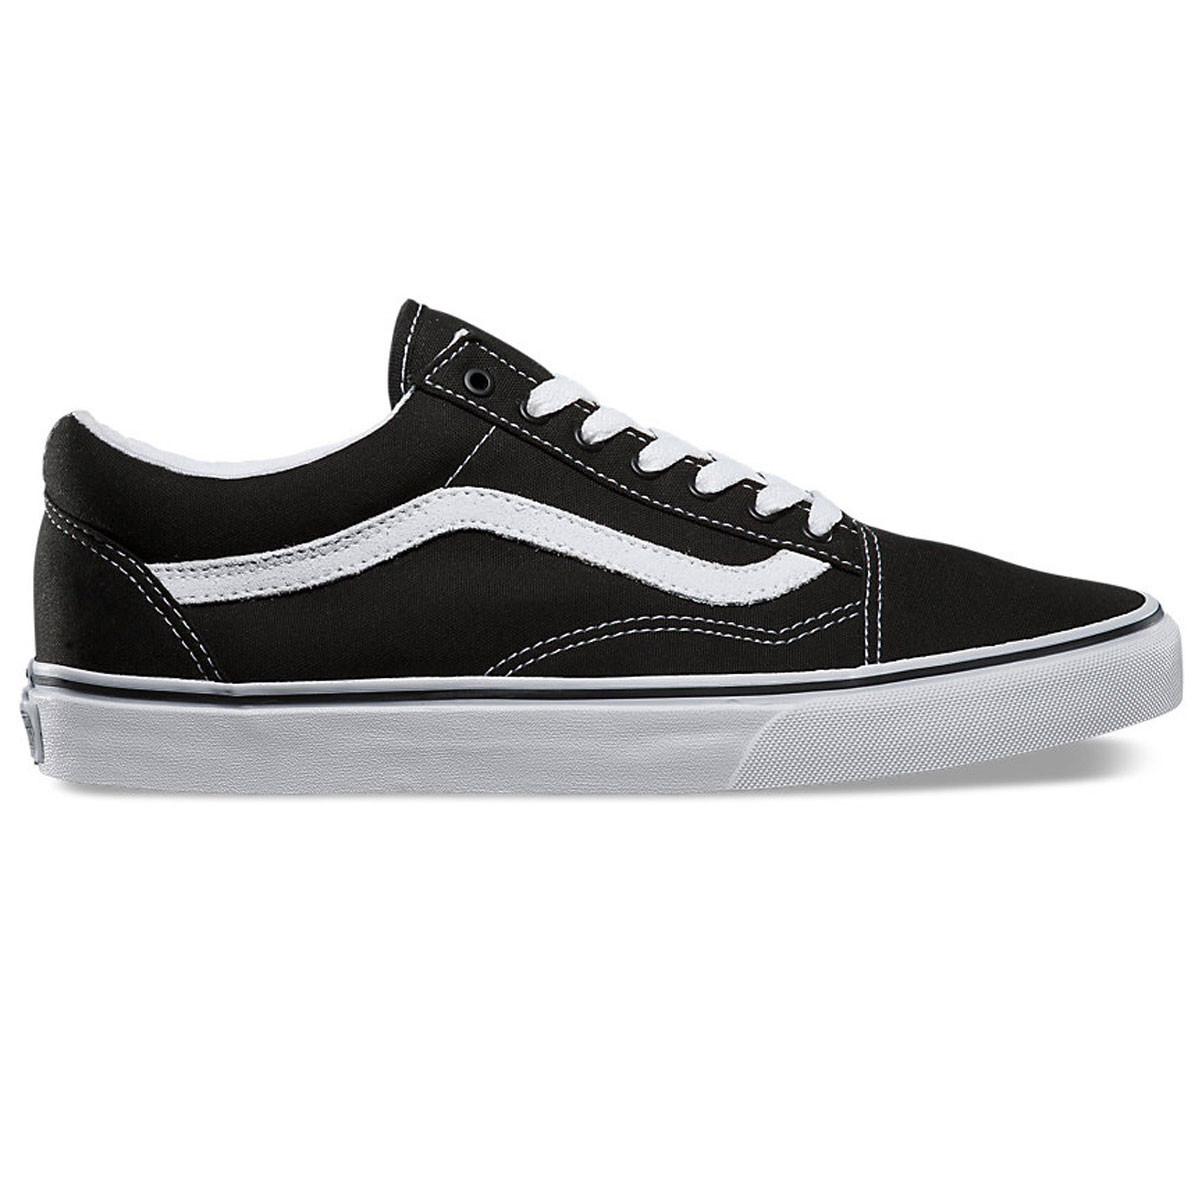 52fbe0062a6ff Vans Old Skool Core Classic Shoes - Black/White - 8.5